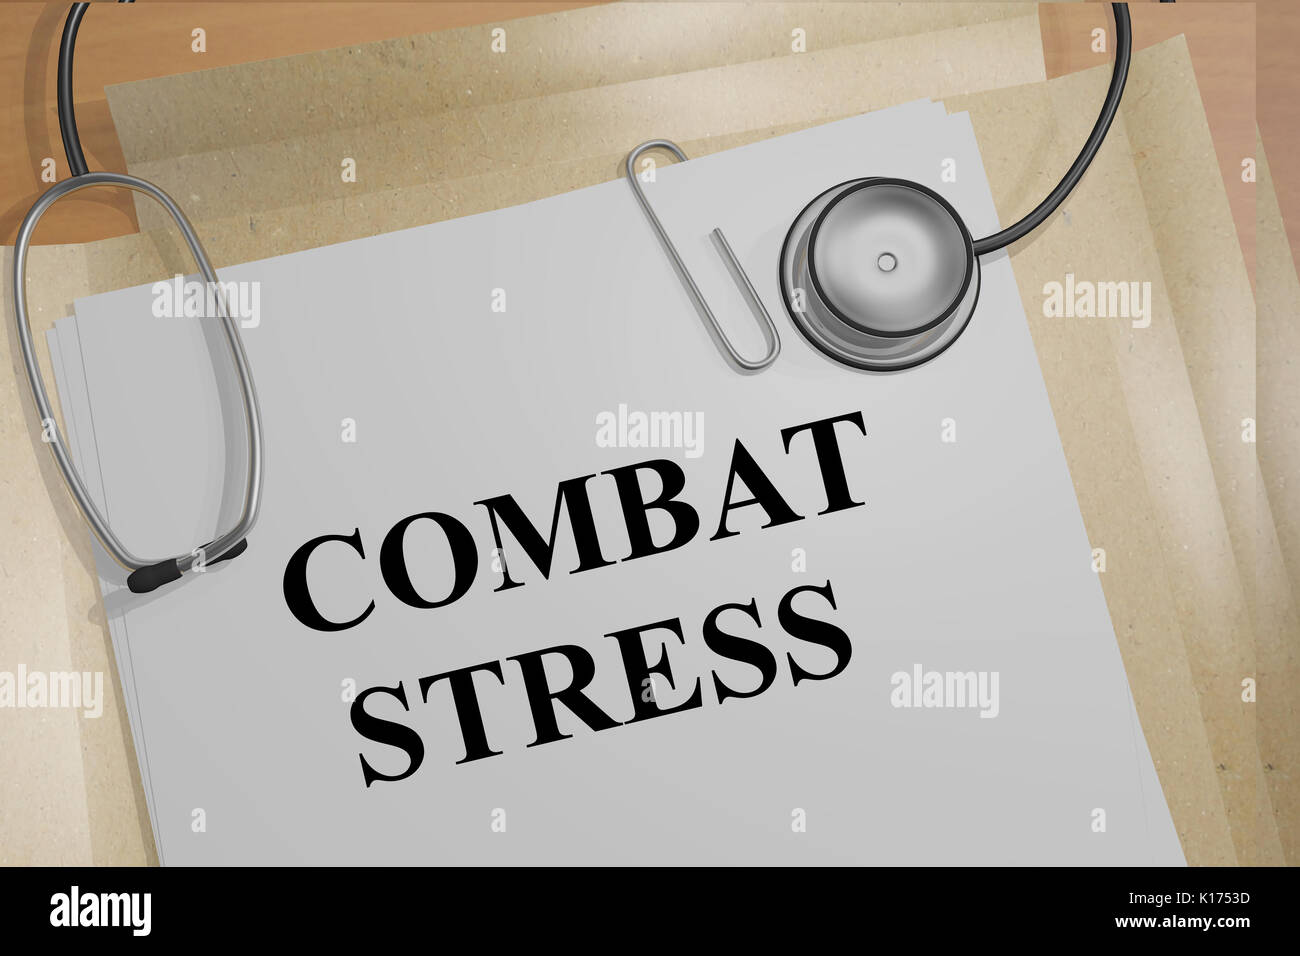 3D illustration of 'COMBAT STRESS' title on medical document - Stock Image